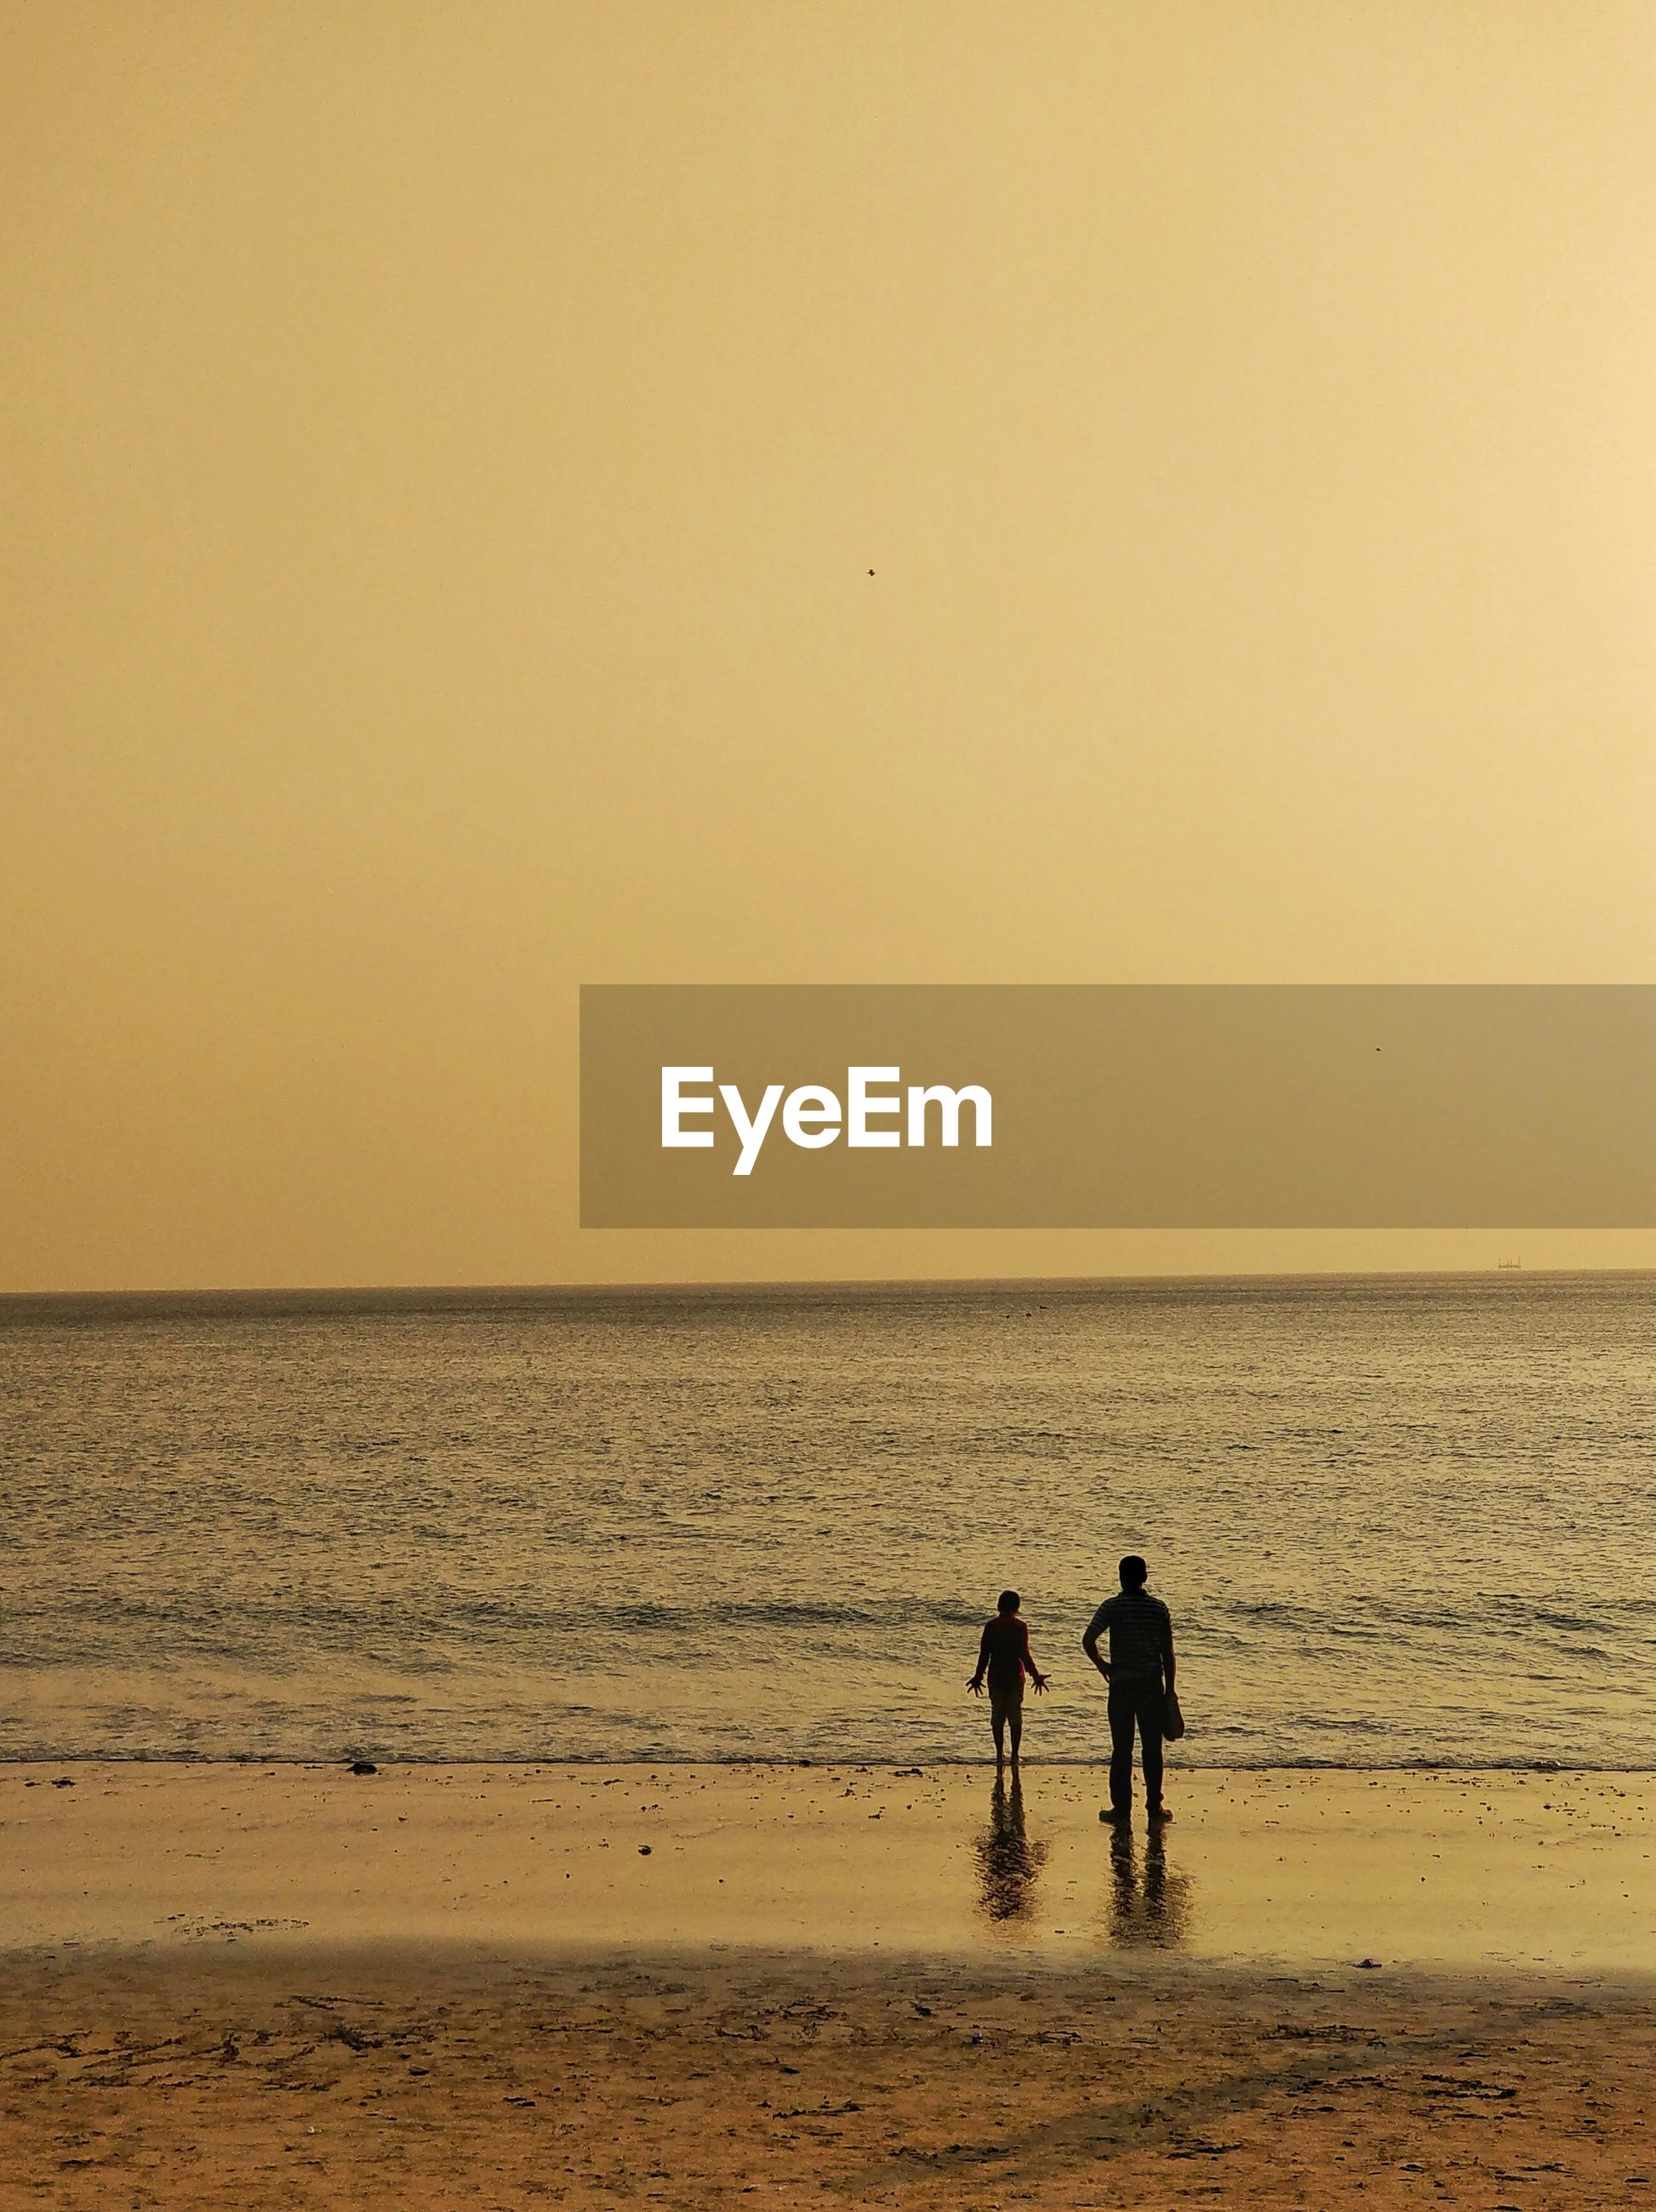 Silhouette man with son standing on shore at beach against clear orange sky